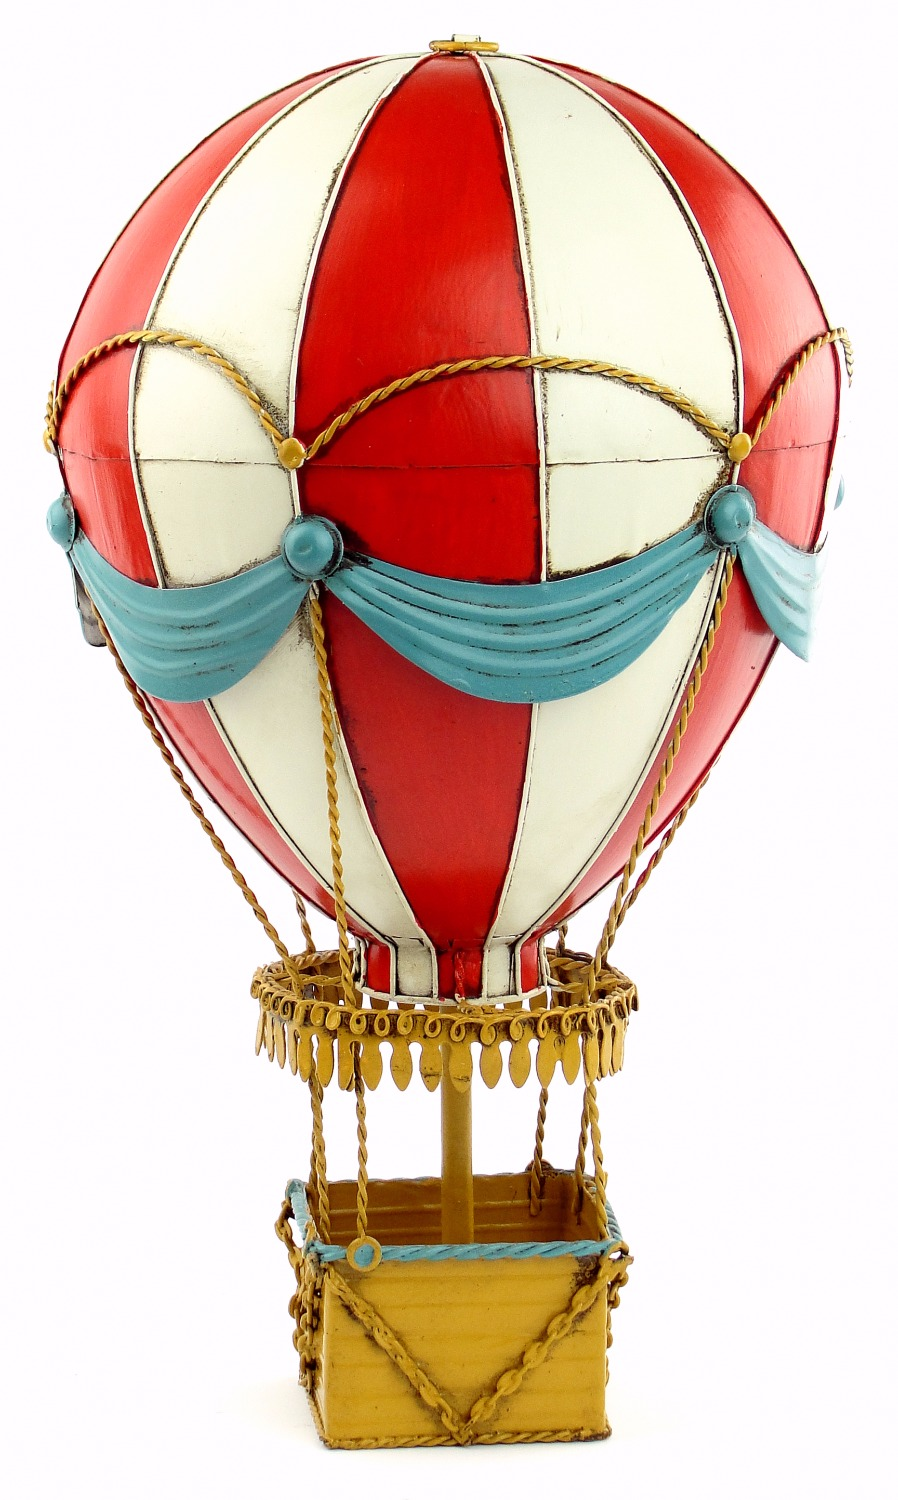 In the 19th century fire balloon model Home Furnishing bar restaurant decoration accessories creative decoration